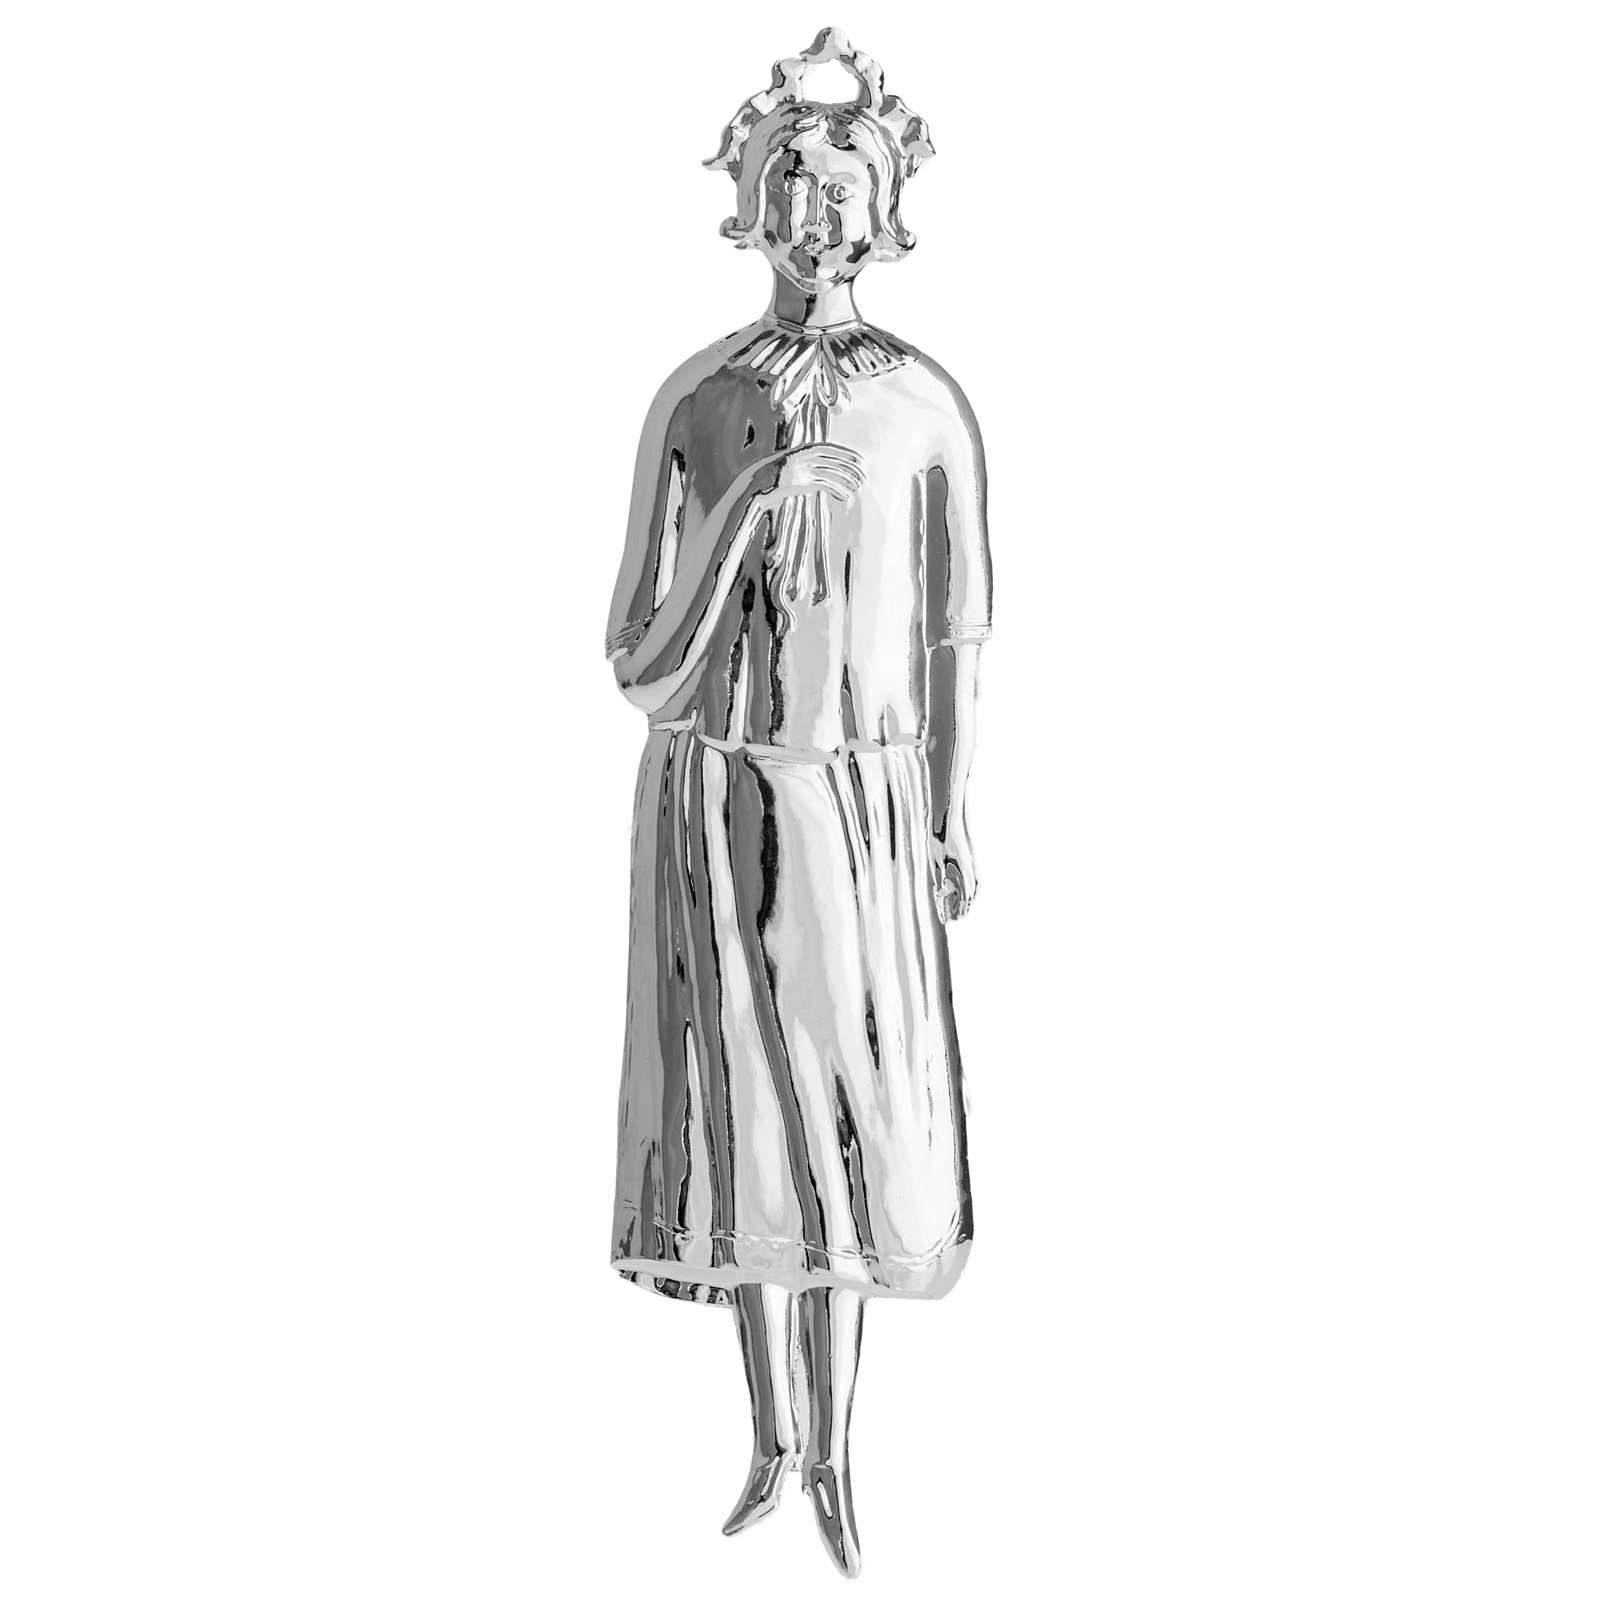 Ex-voto, woman in sterling silver or metal, 20cm 3